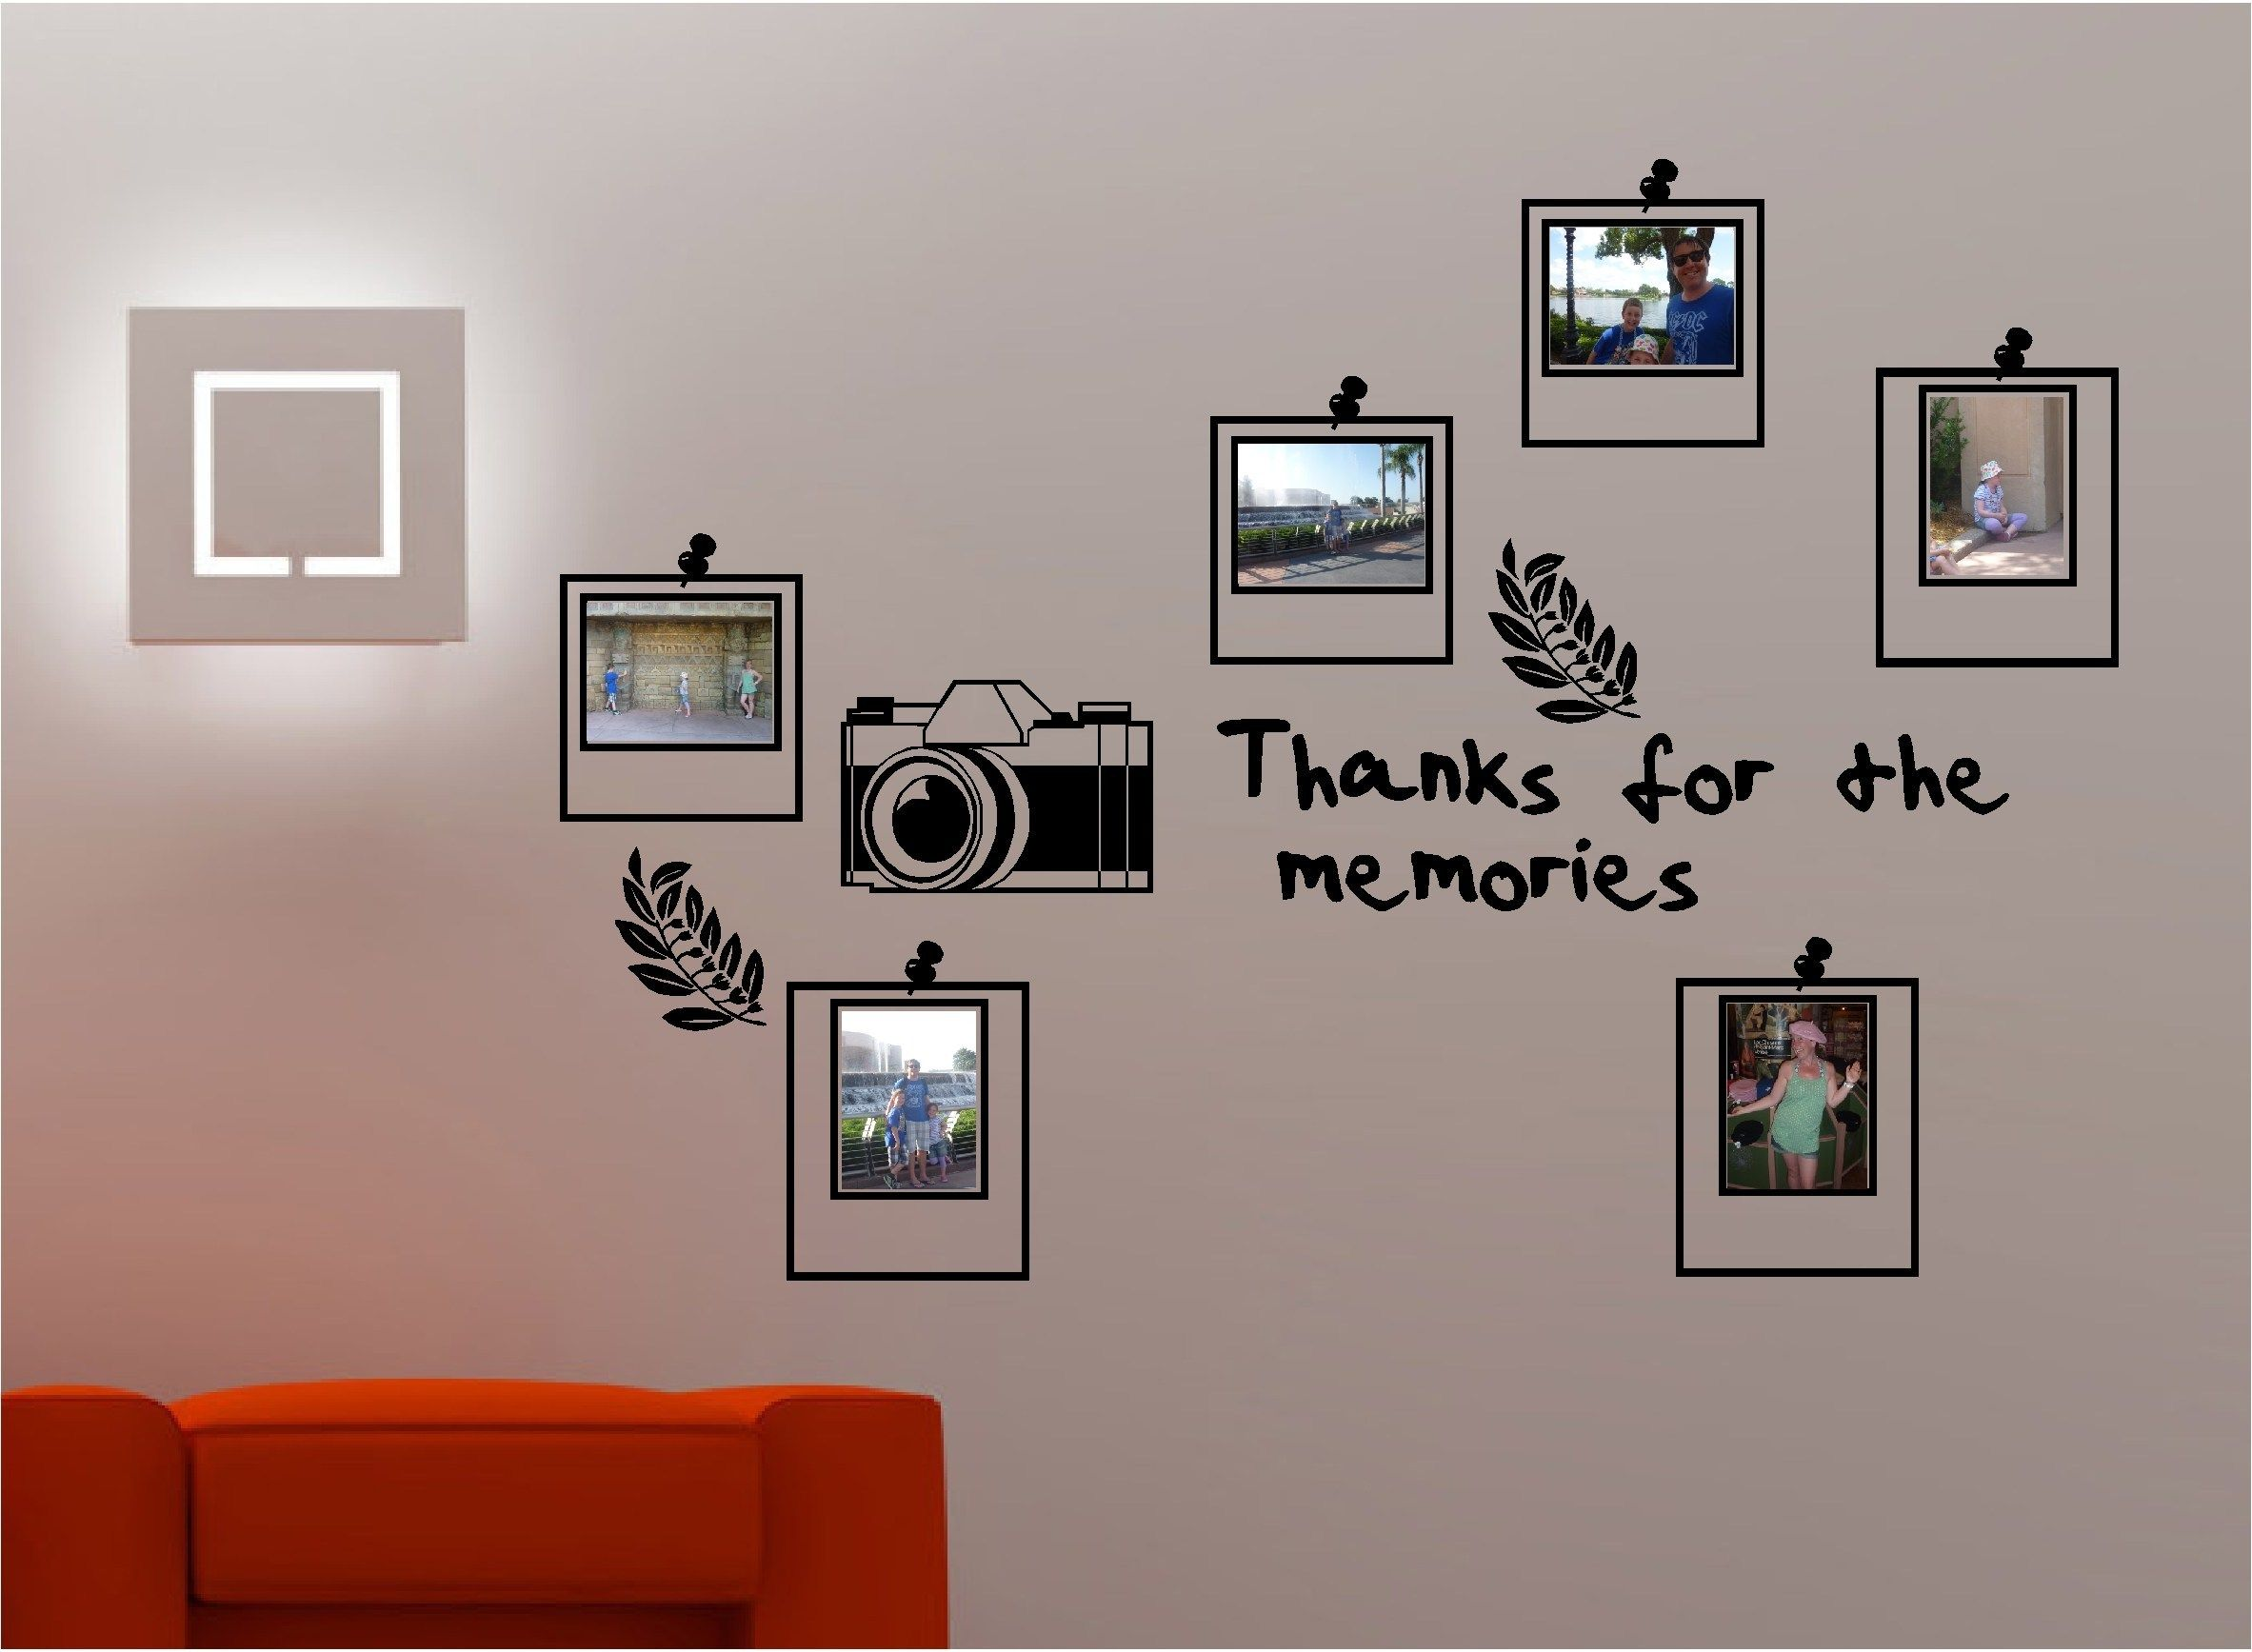 5 Diy Projects To Turn Your Photos Into Wall Art Society19 Easy Diy Room Decor Kitchen Wall Art Set Frame Wall Decor